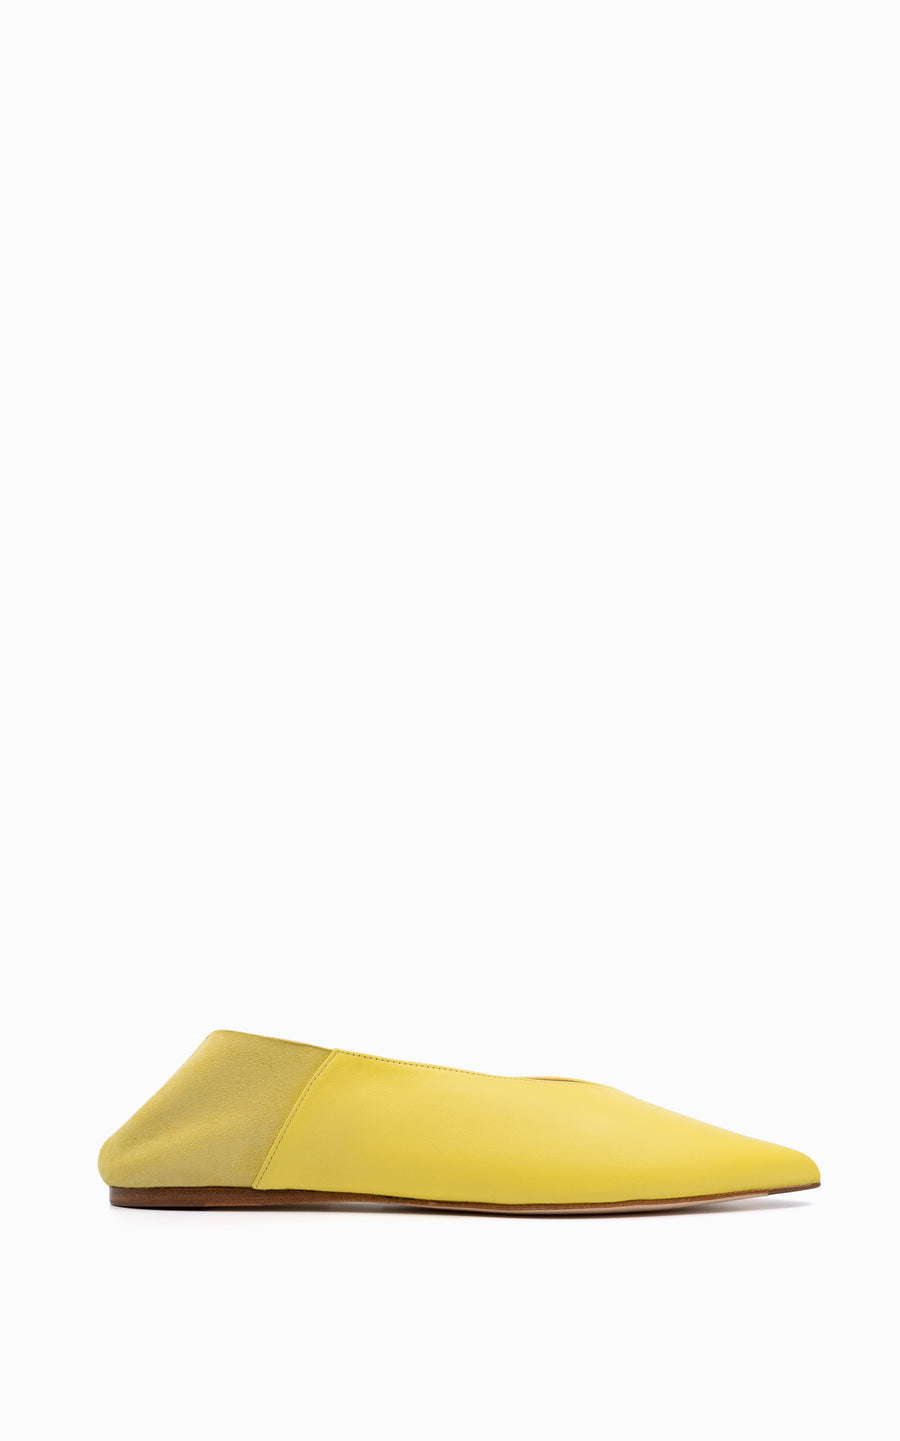 Preorder Pointed Babouche Slipper | Lemon